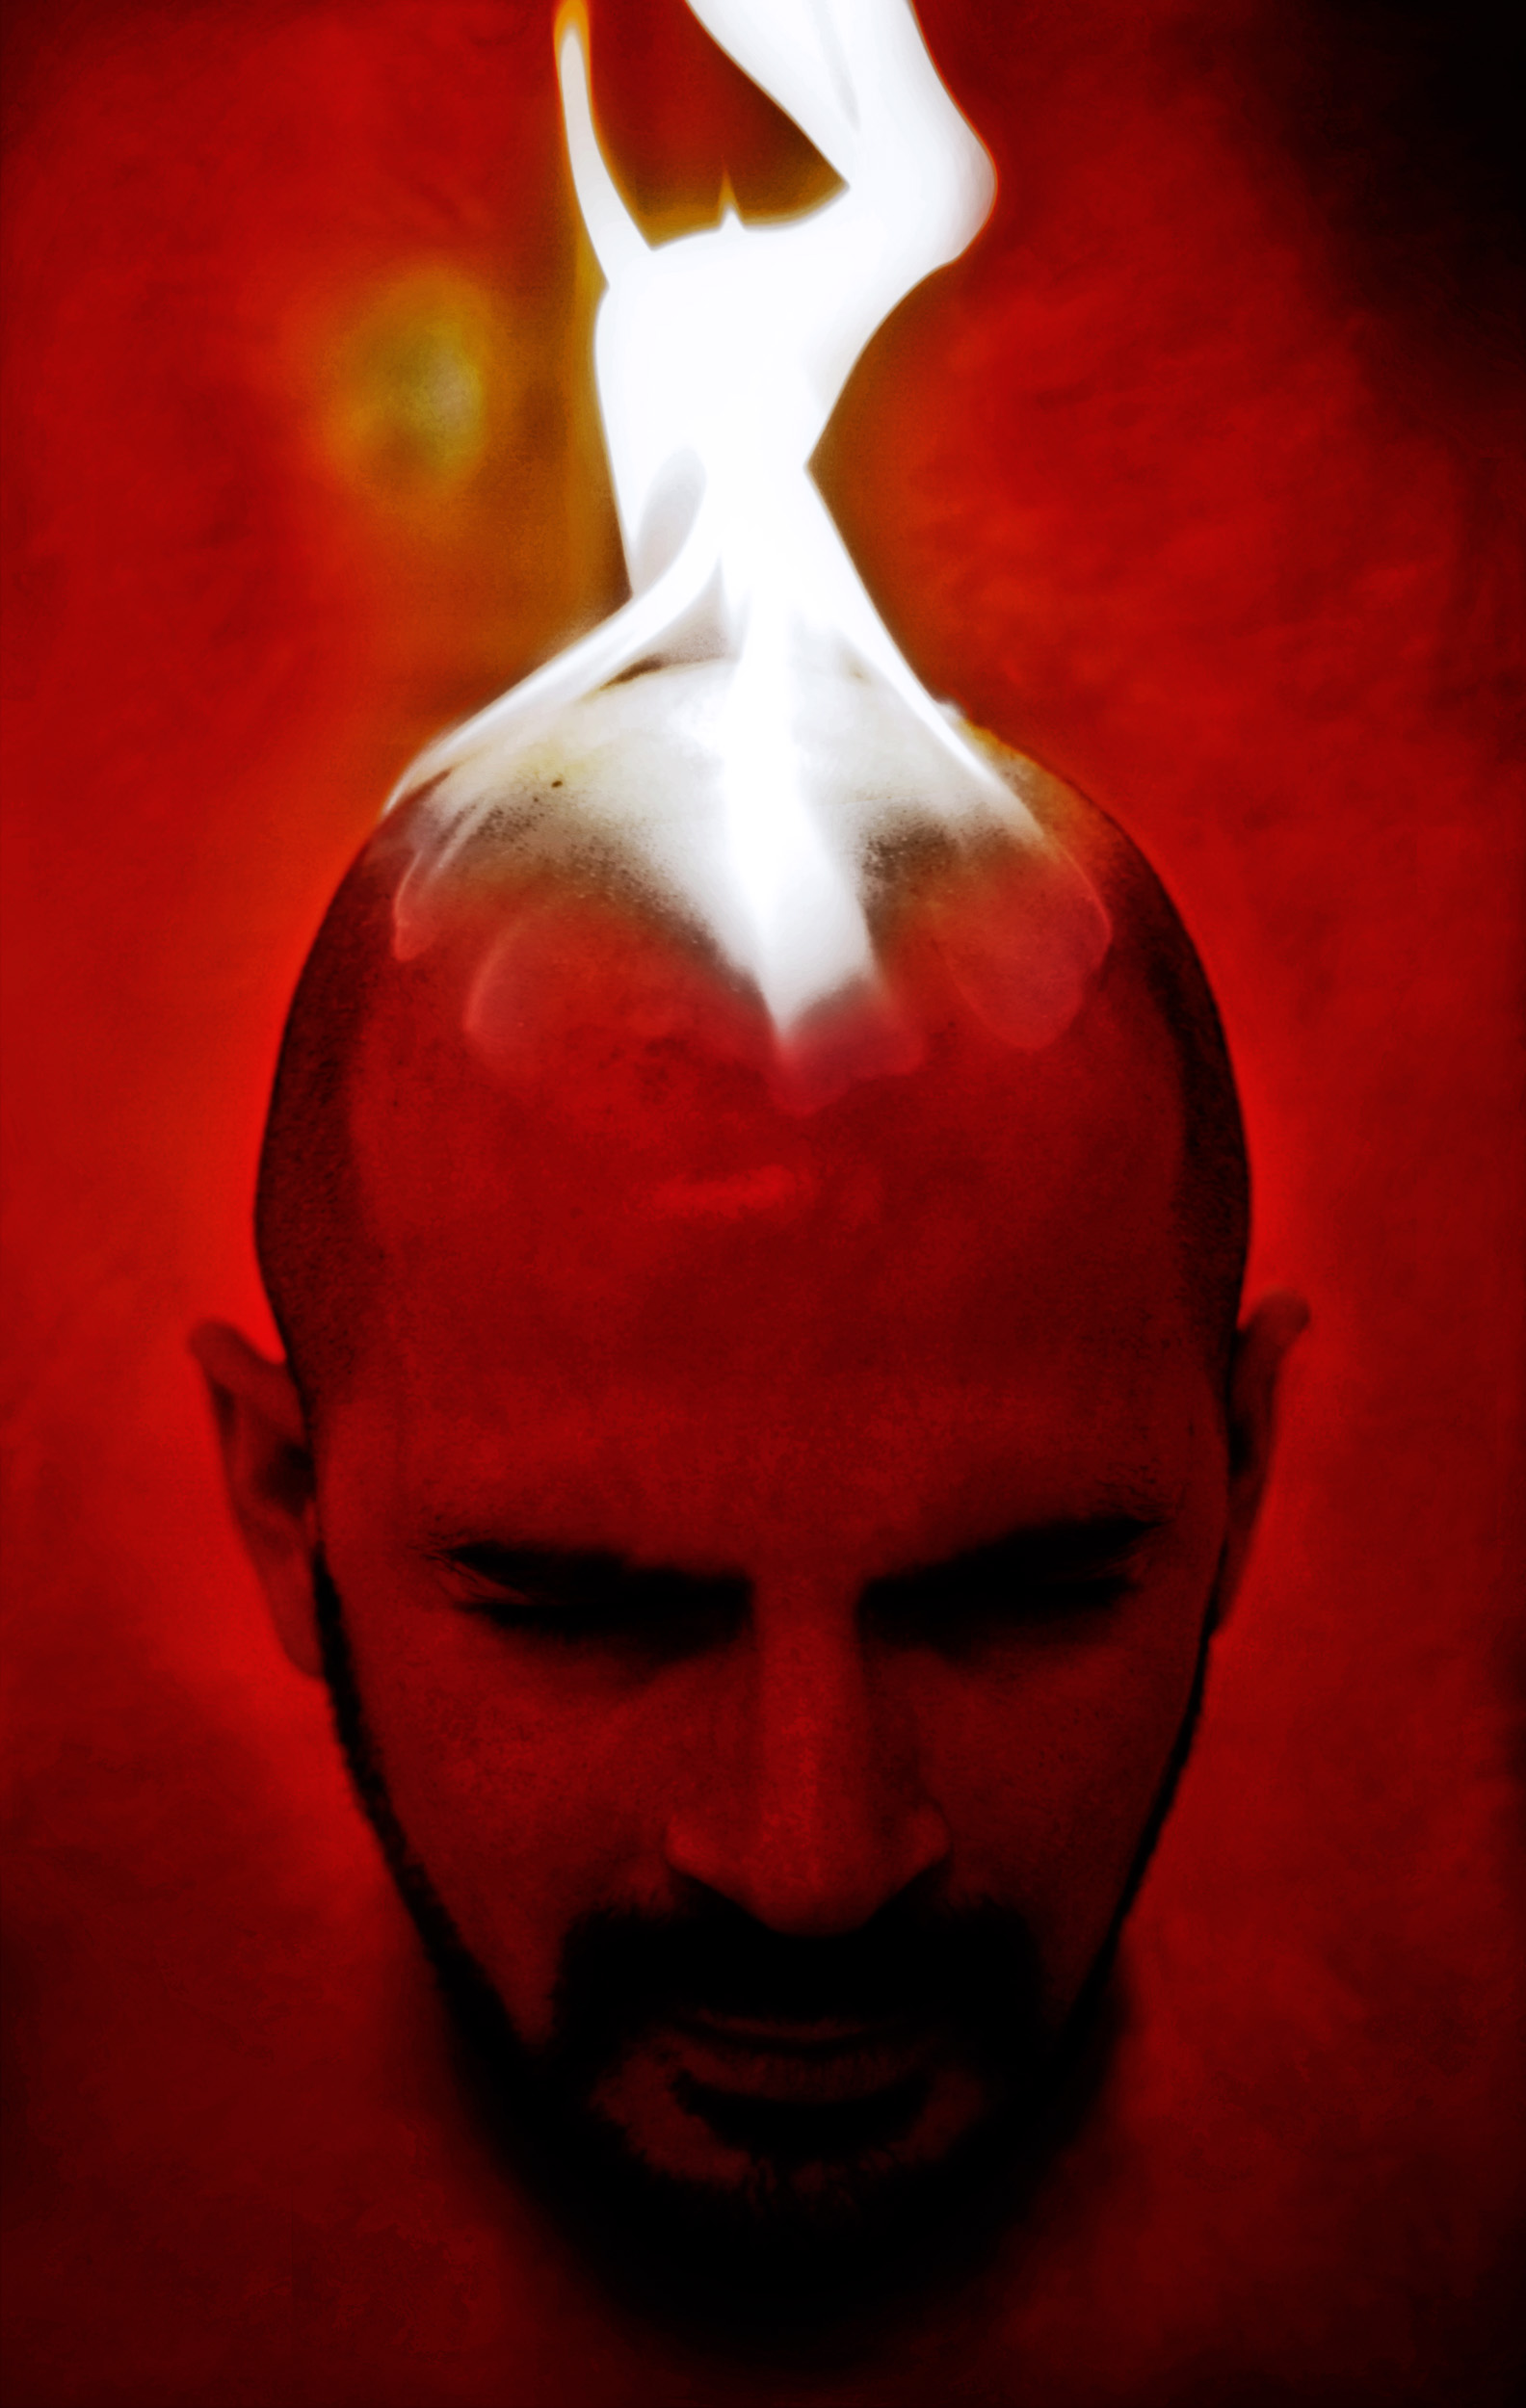 Fire_picture_selfportrait_in_red.jpg